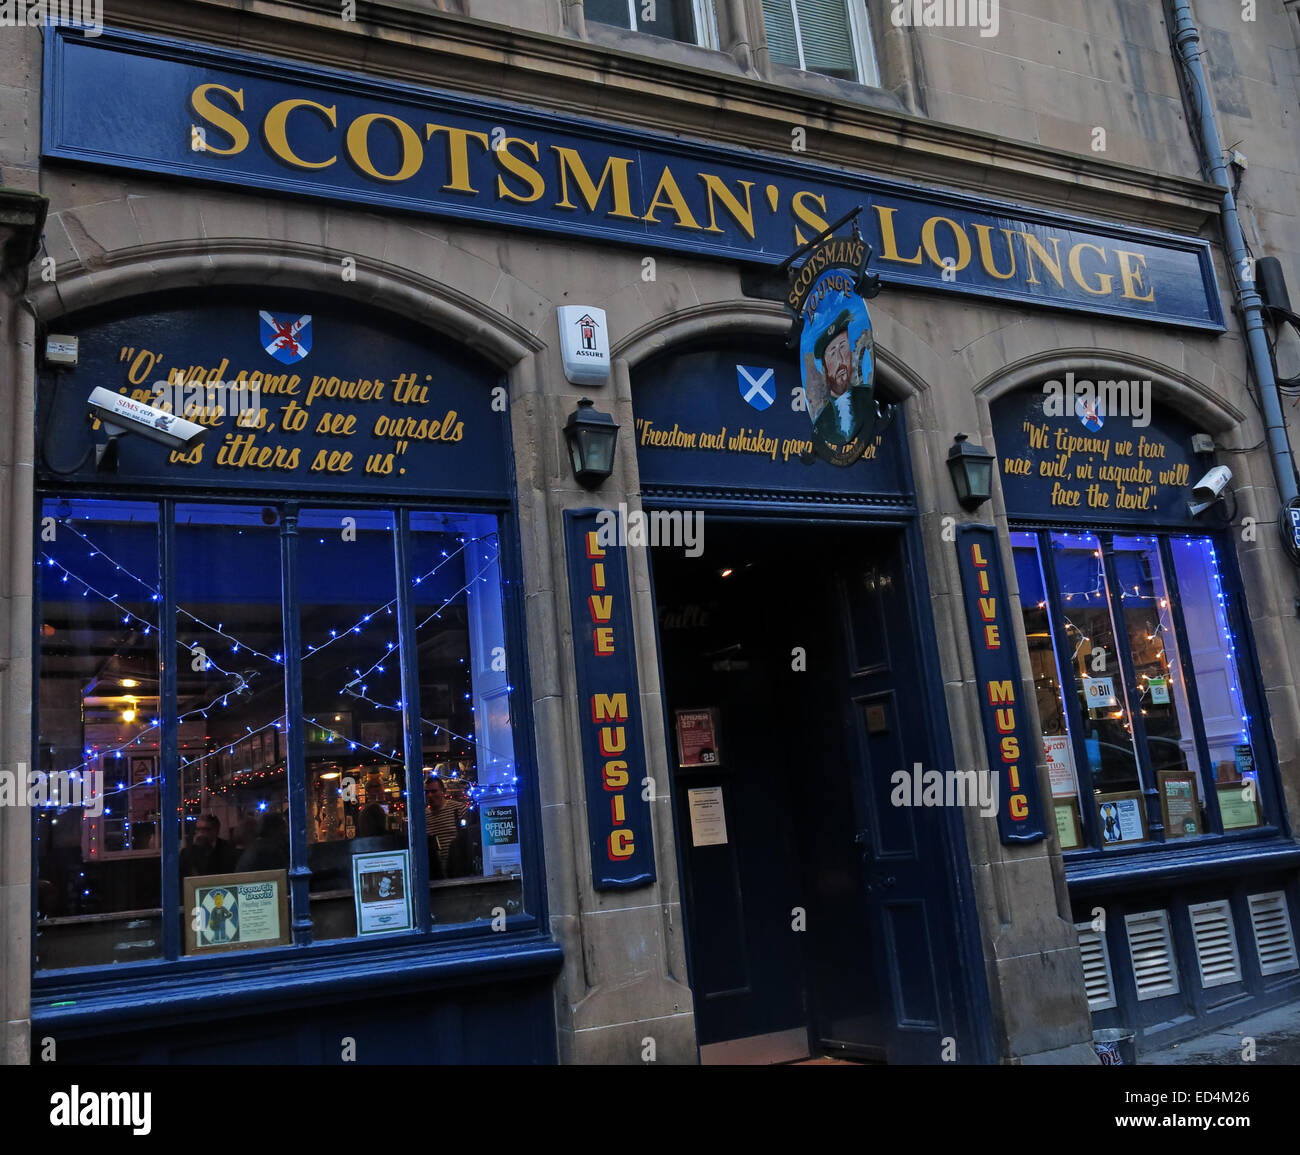 A view from outside the Scotsmans lounge traditional pub, Cockburn St, Edinburgh,  Scotland, UK Stock Photo